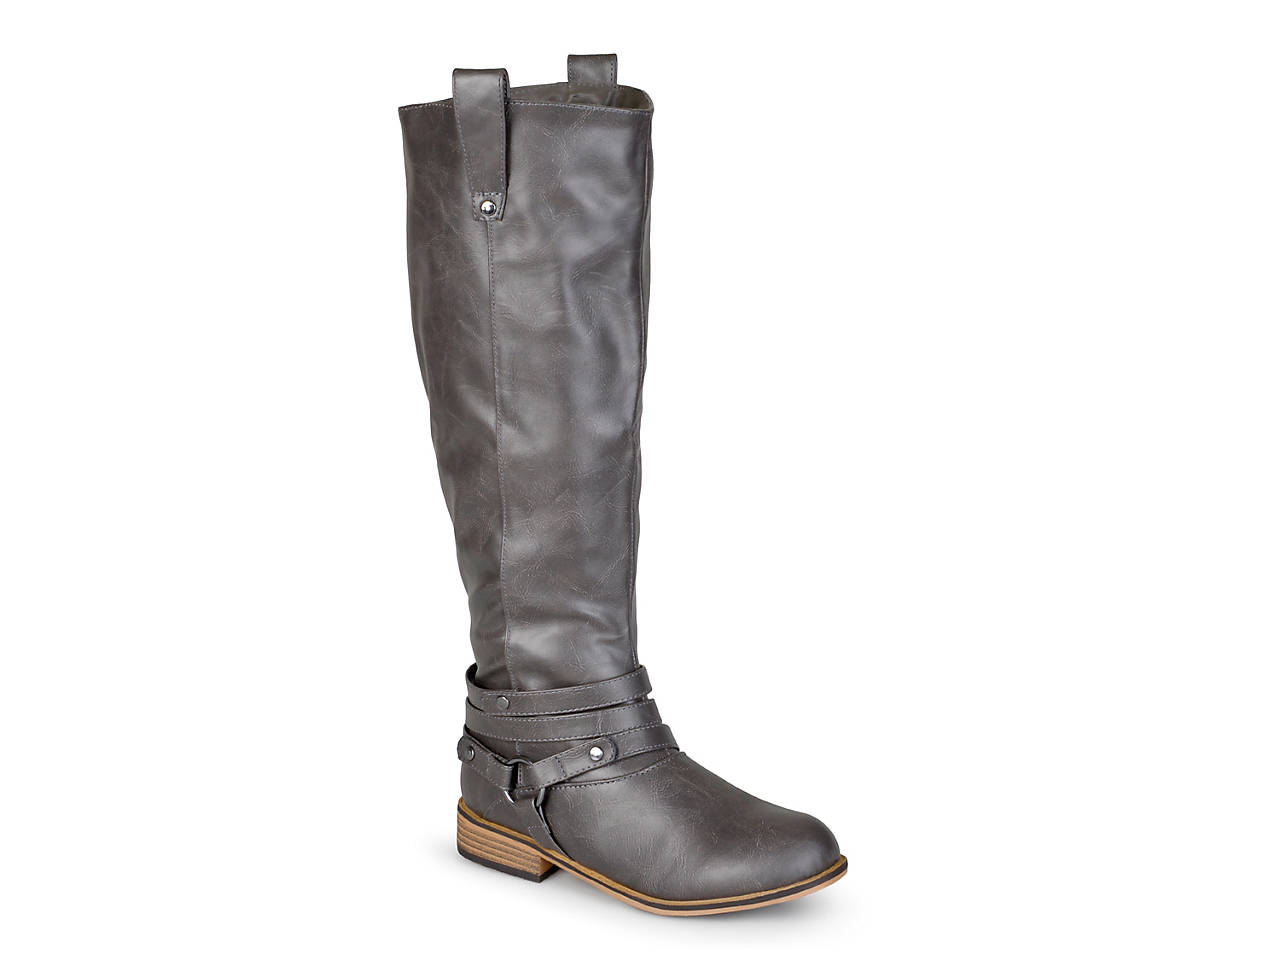 43658ff69ca1 Journee Collection Walla Extra Wide Calf Riding Boot Women s Shoes